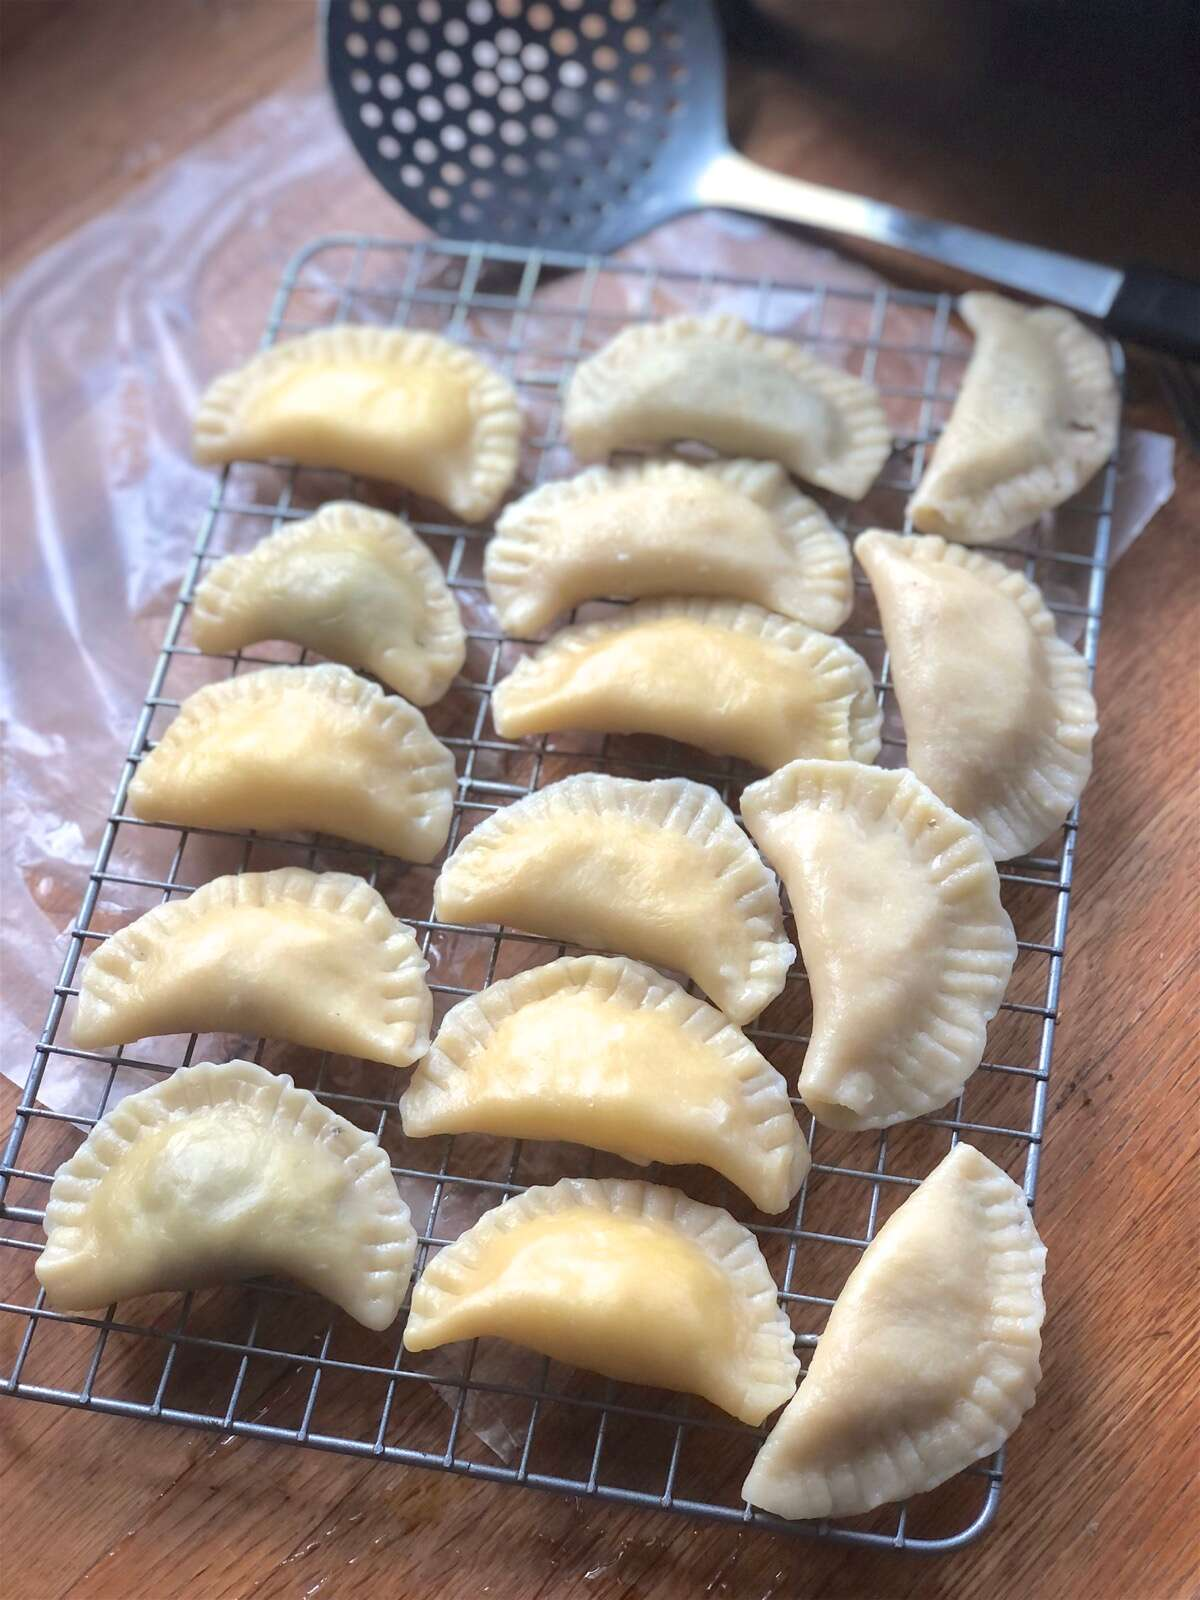 Boiled pierogi cooling on a rack prior to being fried with onions.